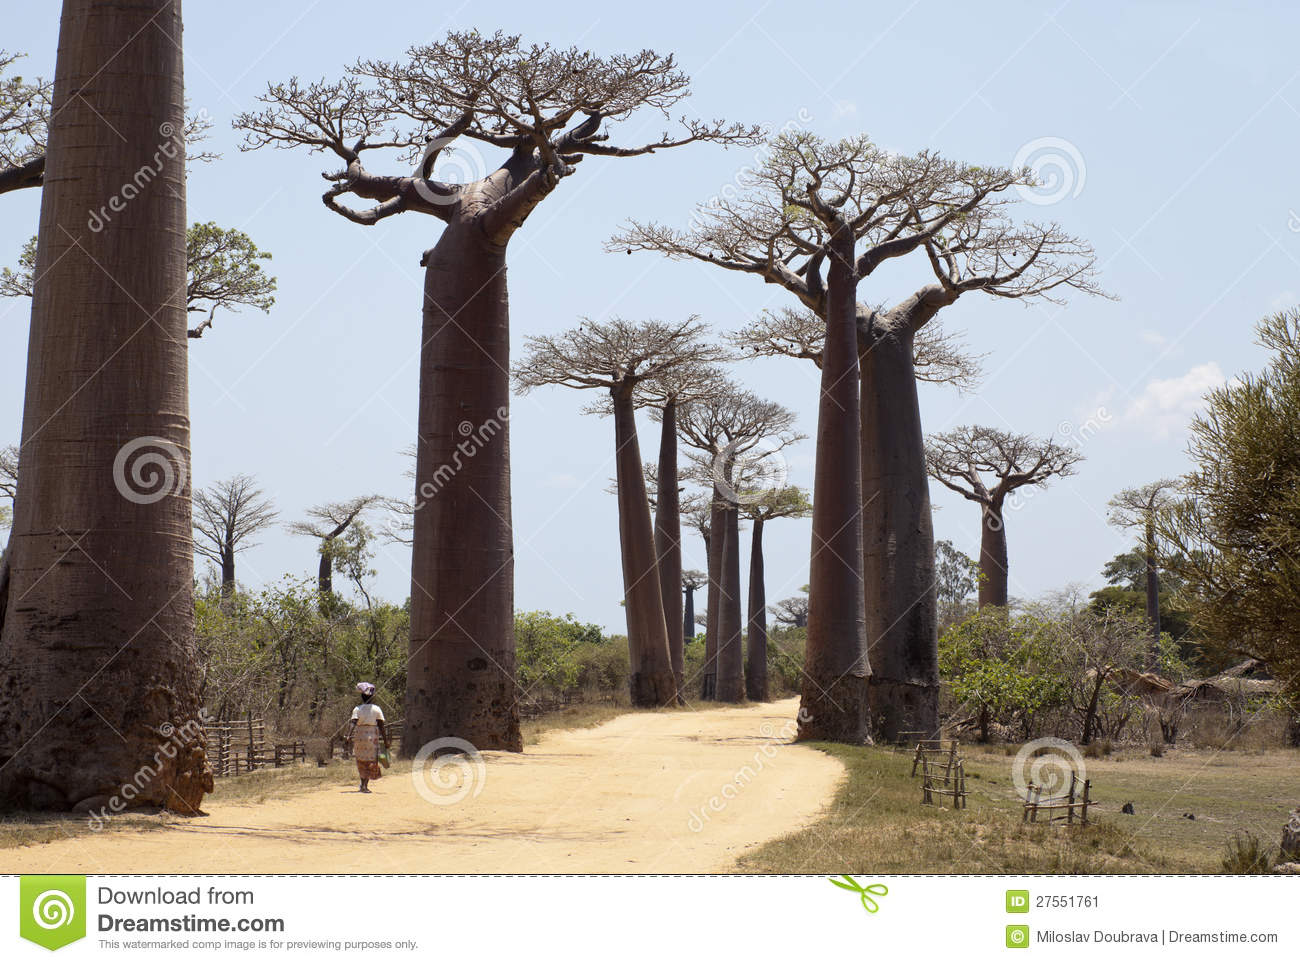 Baobabs alley